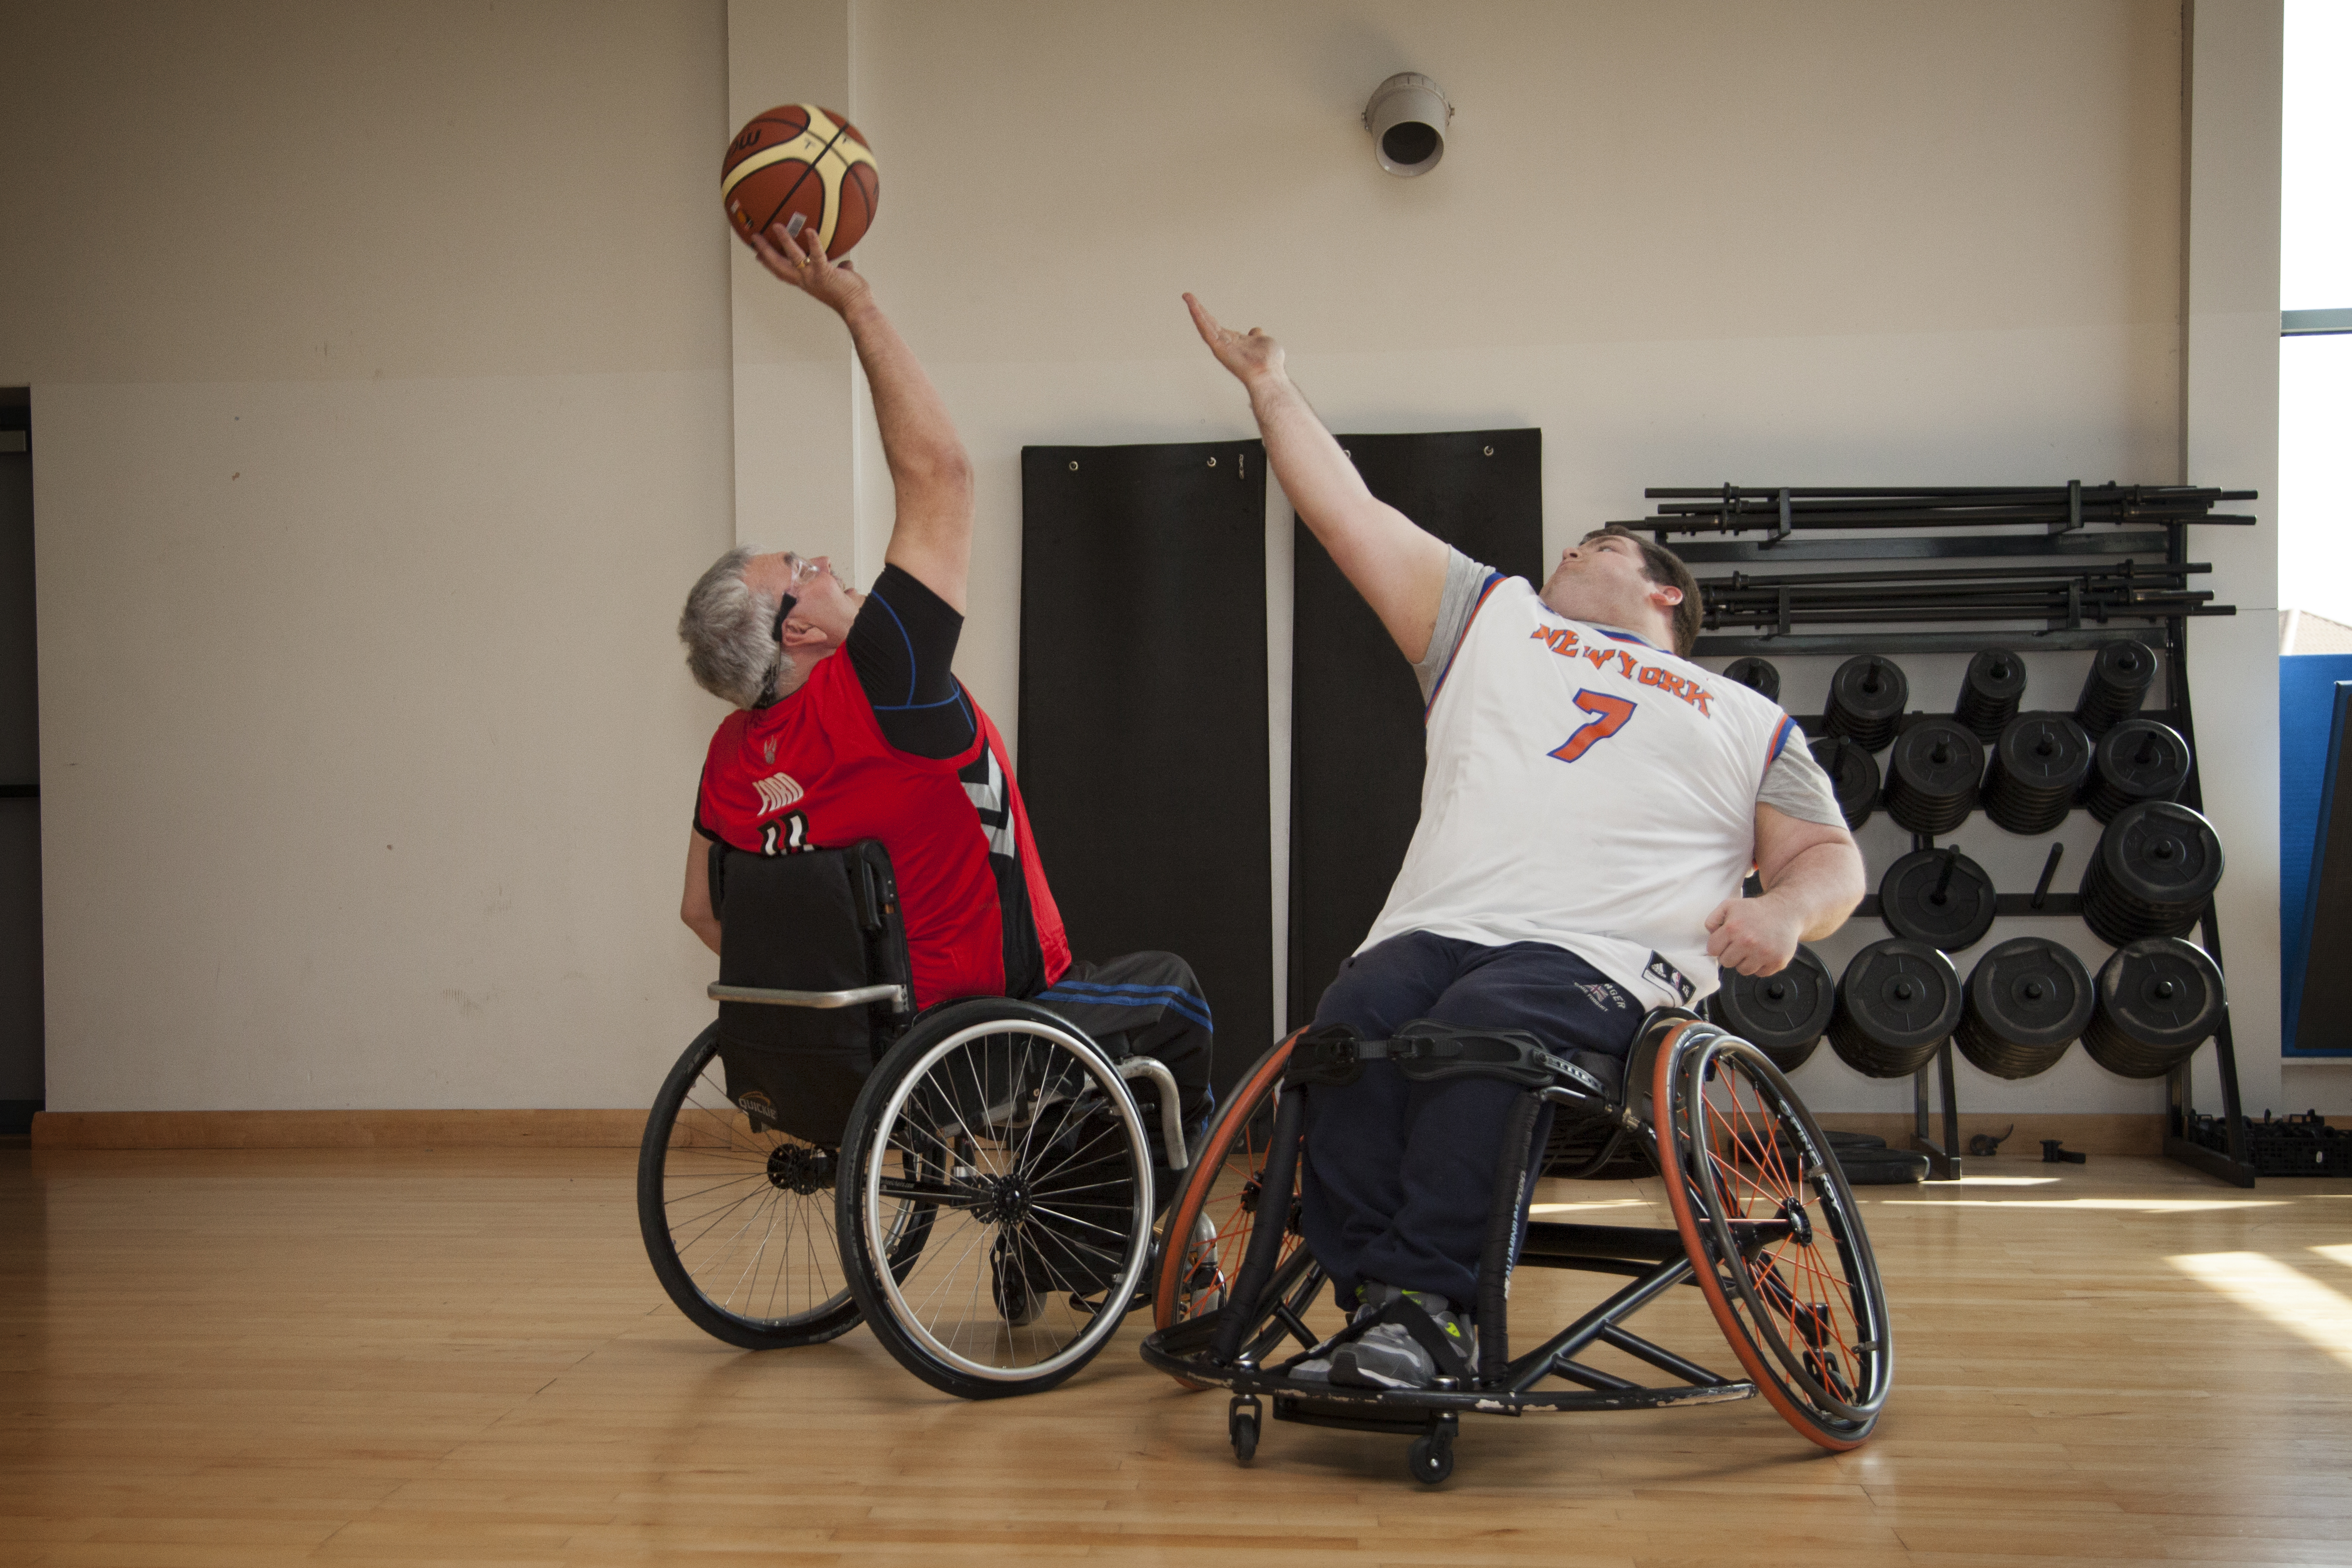 Share your experience of getting active in the West Midlands